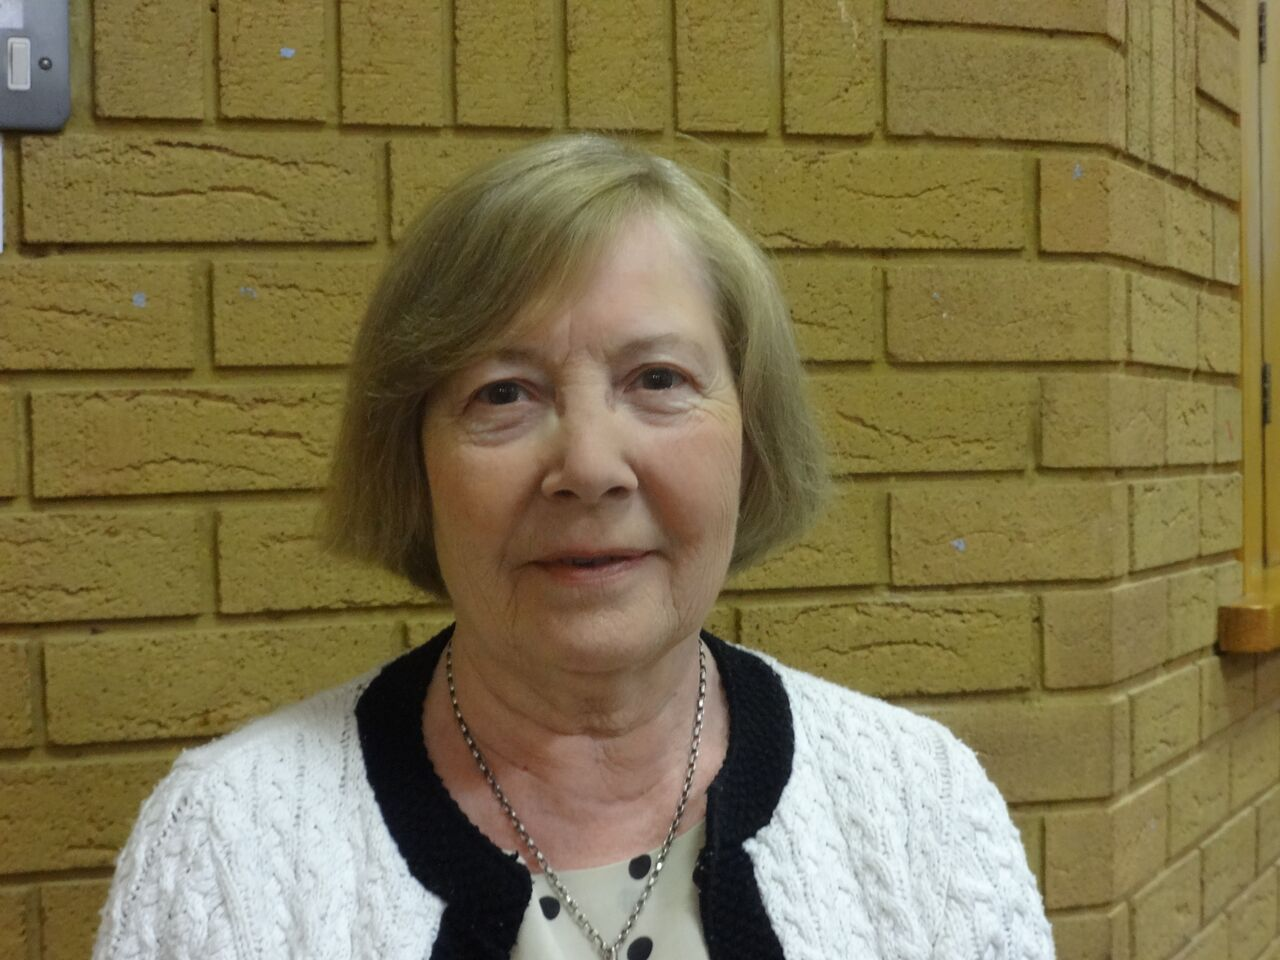 Cllr Mrs Pat Fairclough (Liberal Democrat)